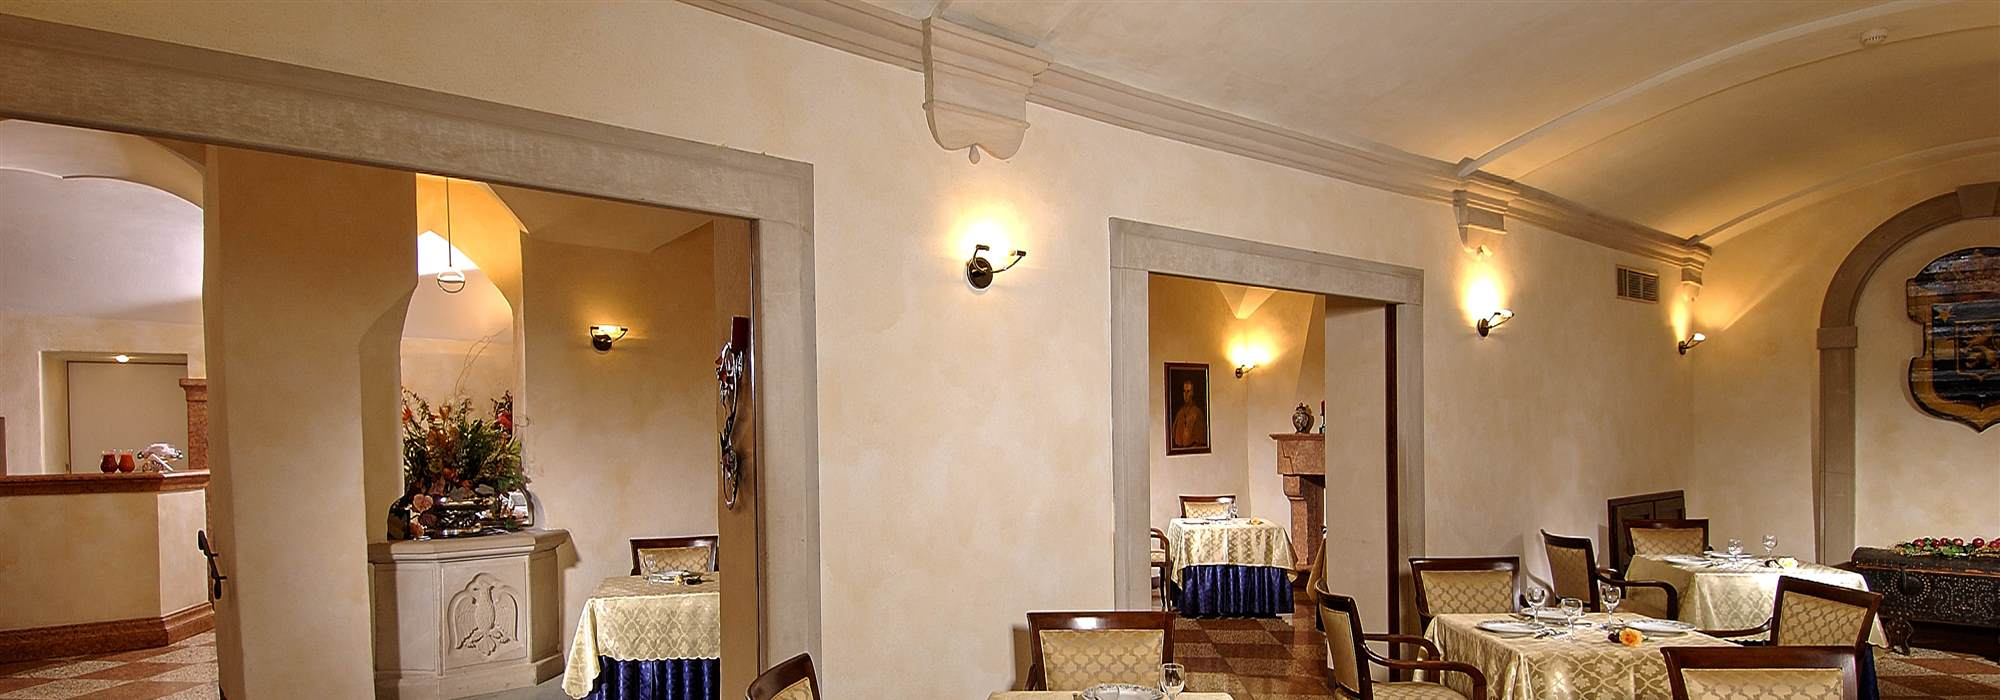 Vacanze bologna art hotel commercianti food valley travel for Hotel charme bologna